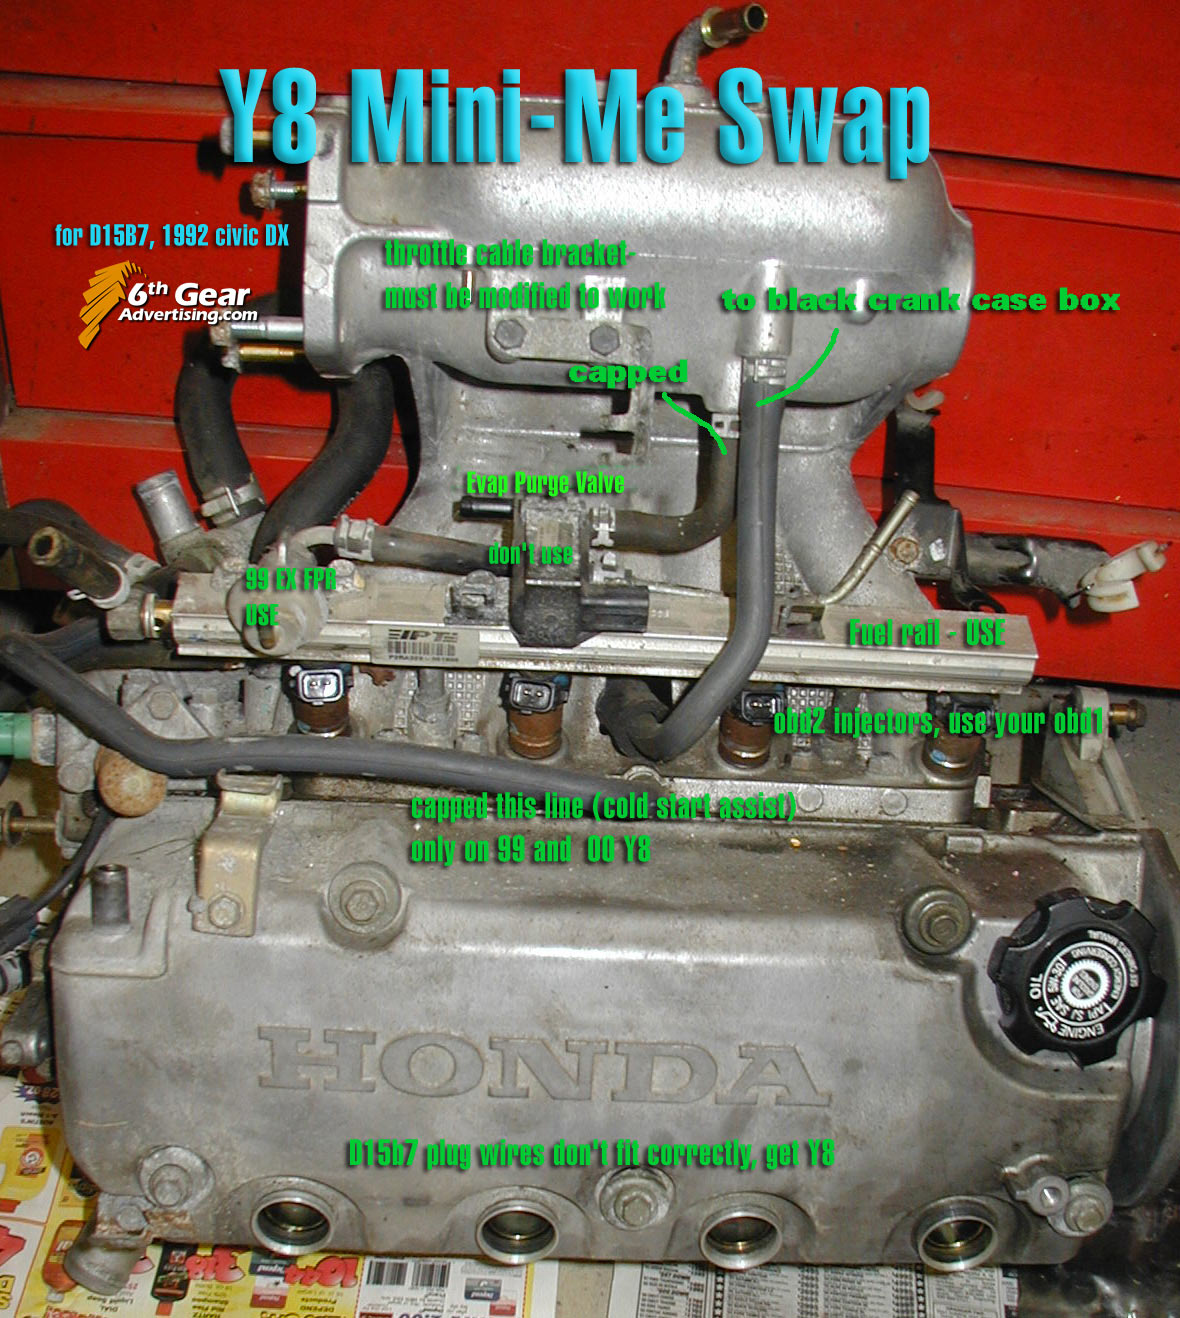 1990 Acura Integra Transmission Sensor Wiring Diagram Honda Civic Intake Manifold List Of Schematic Circuit D16y5 Swapped To Y8 Tech Forum Rh Com